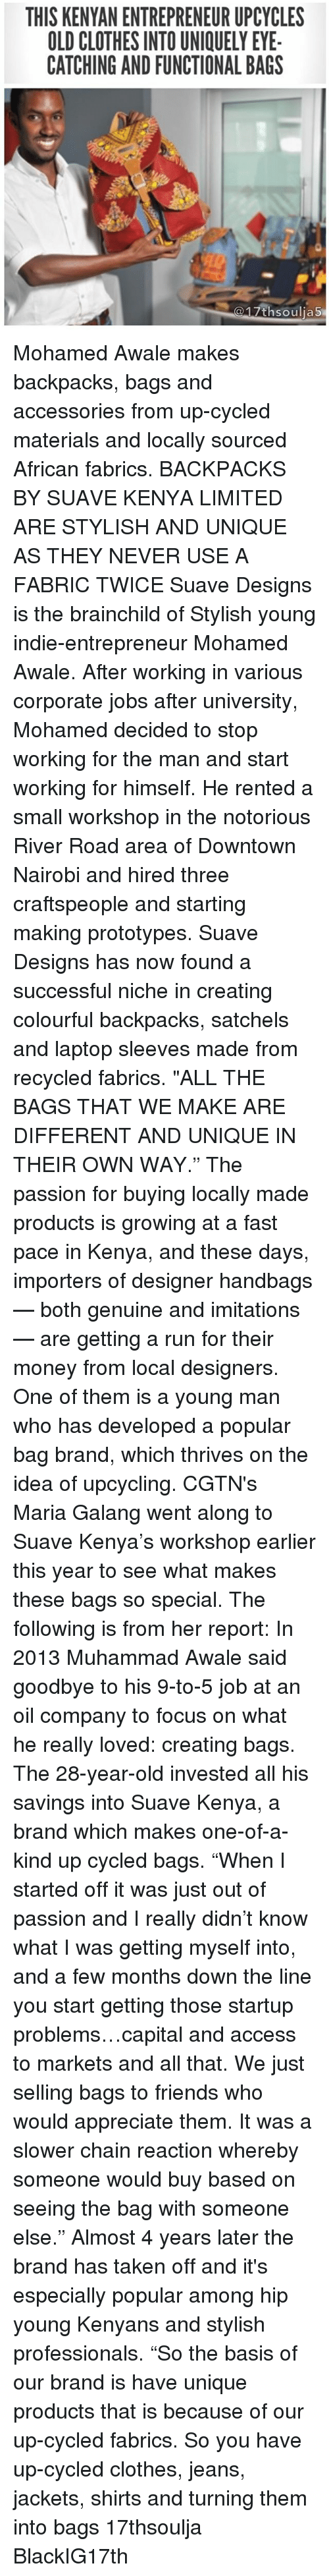 "Clothes, Friends, and Memes: THIS KENYAN ENTREPRENEUR UPCYCLES  OLD CLOTHES INTO UNIQUELY EYE  CATCHING AND FUNCTIONAL BAGS  7thsoulia5 Mohamed Awale makes backpacks, bags and accessories from up-cycled materials and locally sourced African fabrics. BACKPACKS BY SUAVE KENYA LIMITED ARE STYLISH AND UNIQUE AS THEY NEVER USE A FABRIC TWICE Suave Designs is the brainchild of Stylish young indie-entrepreneur Mohamed Awale. After working in various corporate jobs after university, Mohamed decided to stop working for the man and start working for himself. He rented a small workshop in the notorious River Road area of Downtown Nairobi and hired three craftspeople and starting making prototypes. Suave Designs has now found a successful niche in creating colourful backpacks, satchels and laptop sleeves made from recycled fabrics. ""ALL THE BAGS THAT WE MAKE ARE DIFFERENT AND UNIQUE IN THEIR OWN WAY."" The passion for buying locally made products is growing at a fast pace in Kenya, and these days, importers of designer handbags — both genuine and imitations — are getting a run for their money from local designers. One of them is a young man who has developed a popular bag brand, which thrives on the idea of upcycling. CGTN's Maria Galang went along to Suave Kenya's workshop earlier this year to see what makes these bags so special. The following is from her report: In 2013 Muhammad Awale said goodbye to his 9-to-5 job at an oil company to focus on what he really loved: creating bags. The 28-year-old invested all his savings into Suave Kenya, a brand which makes one-of-a-kind up cycled bags. ""When I started off it was just out of passion and I really didn't know what I was getting myself into, and a few months down the line you start getting those startup problems…capital and access to markets and all that. We just selling bags to friends who would appreciate them. It was a slower chain reaction whereby someone would buy based on seeing the bag with someone else."" Almost 4 years later the brand has taken off and it's especially popular among hip young Kenyans and stylish professionals. ""So the basis of our brand is have unique products that is because of our up-cycled fabrics. So you have up-cycled clothes, jeans, jackets, shirts and turning them into bags 17thsoulja BlackIG17th"